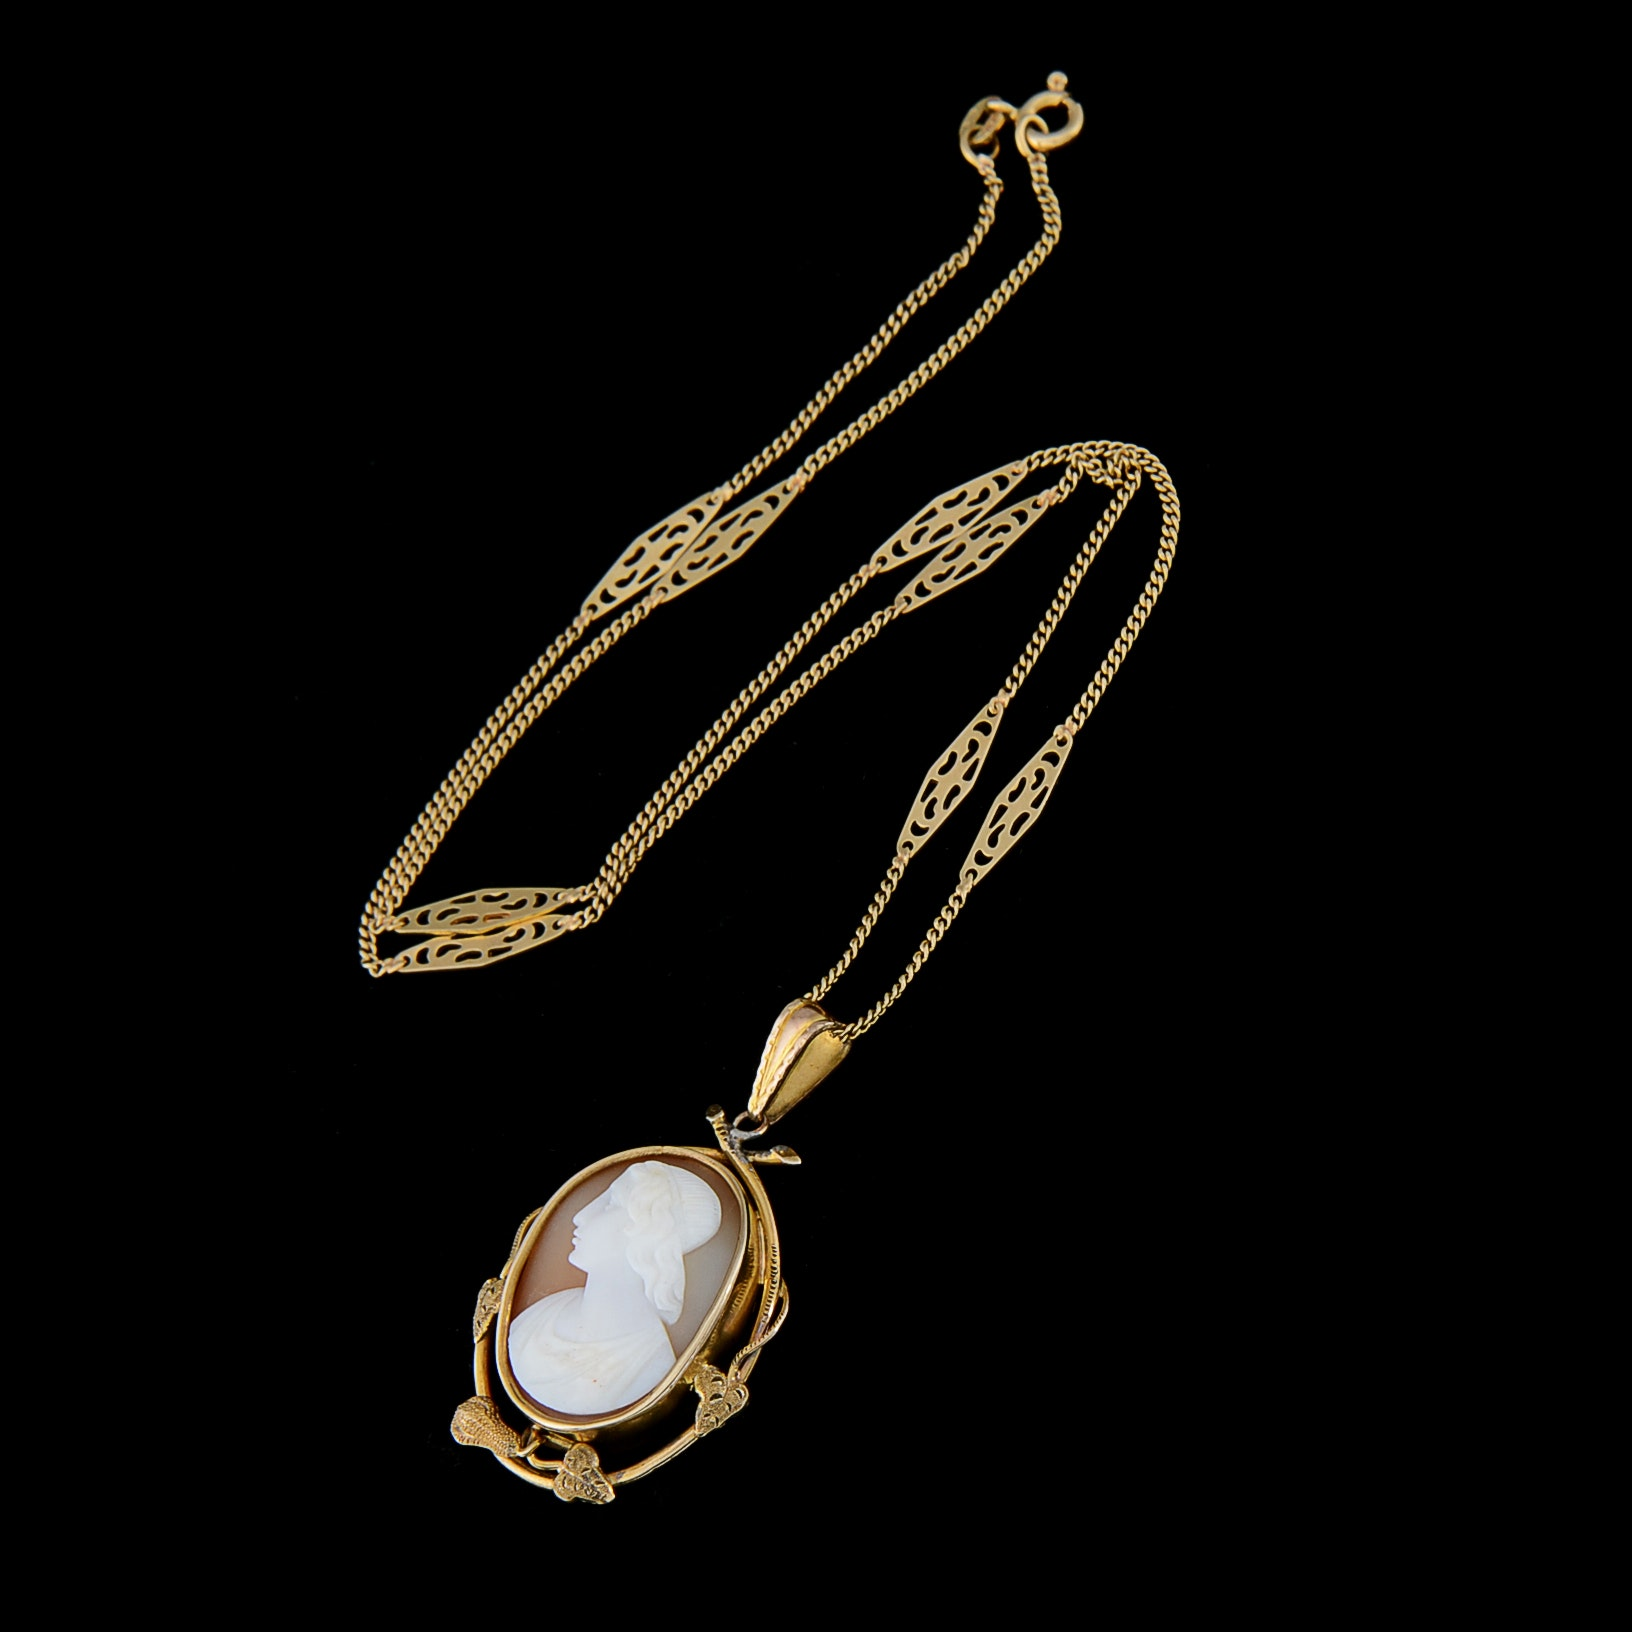 18K Yellow Gold Chain and 12K Yellow Gold Cameo Necklace